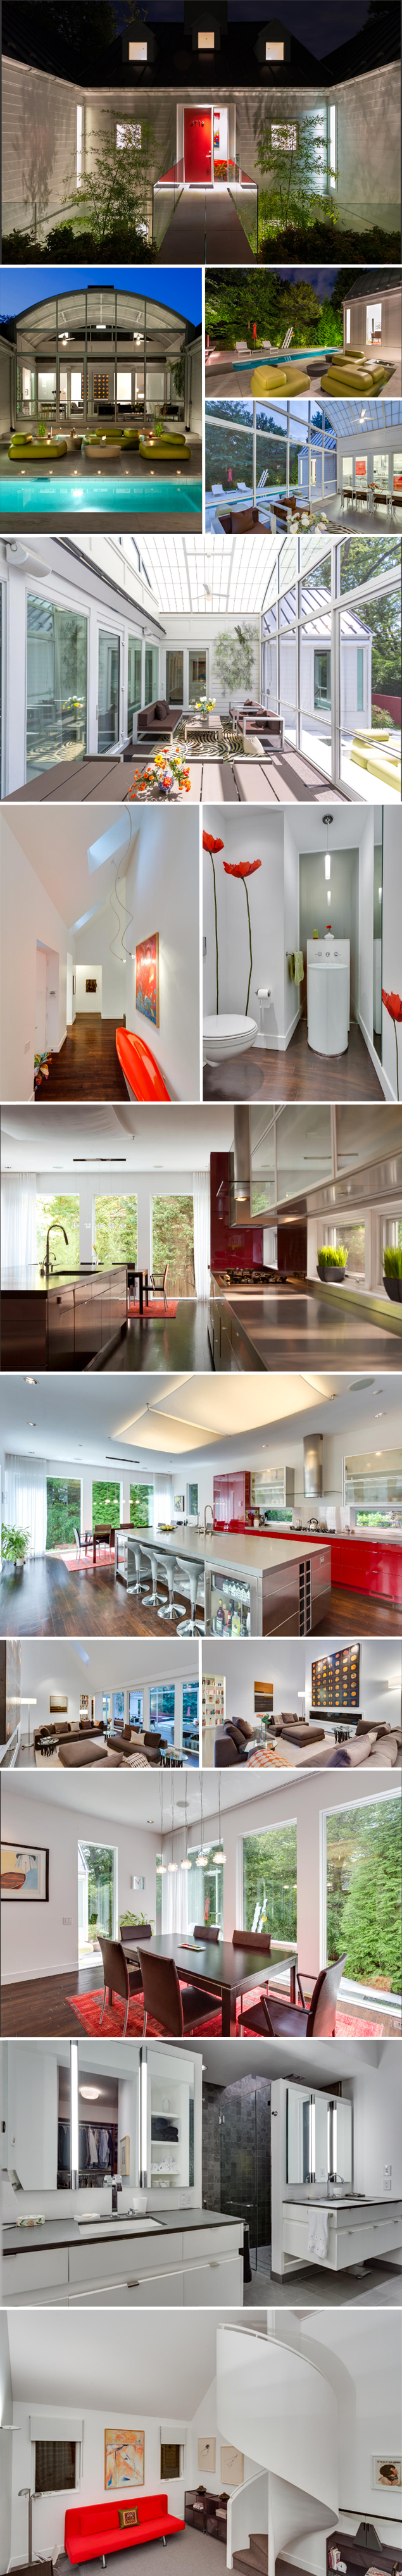 Friday Dream House A Hugh Newell Jacobsen Designed Home in Chevy Chase